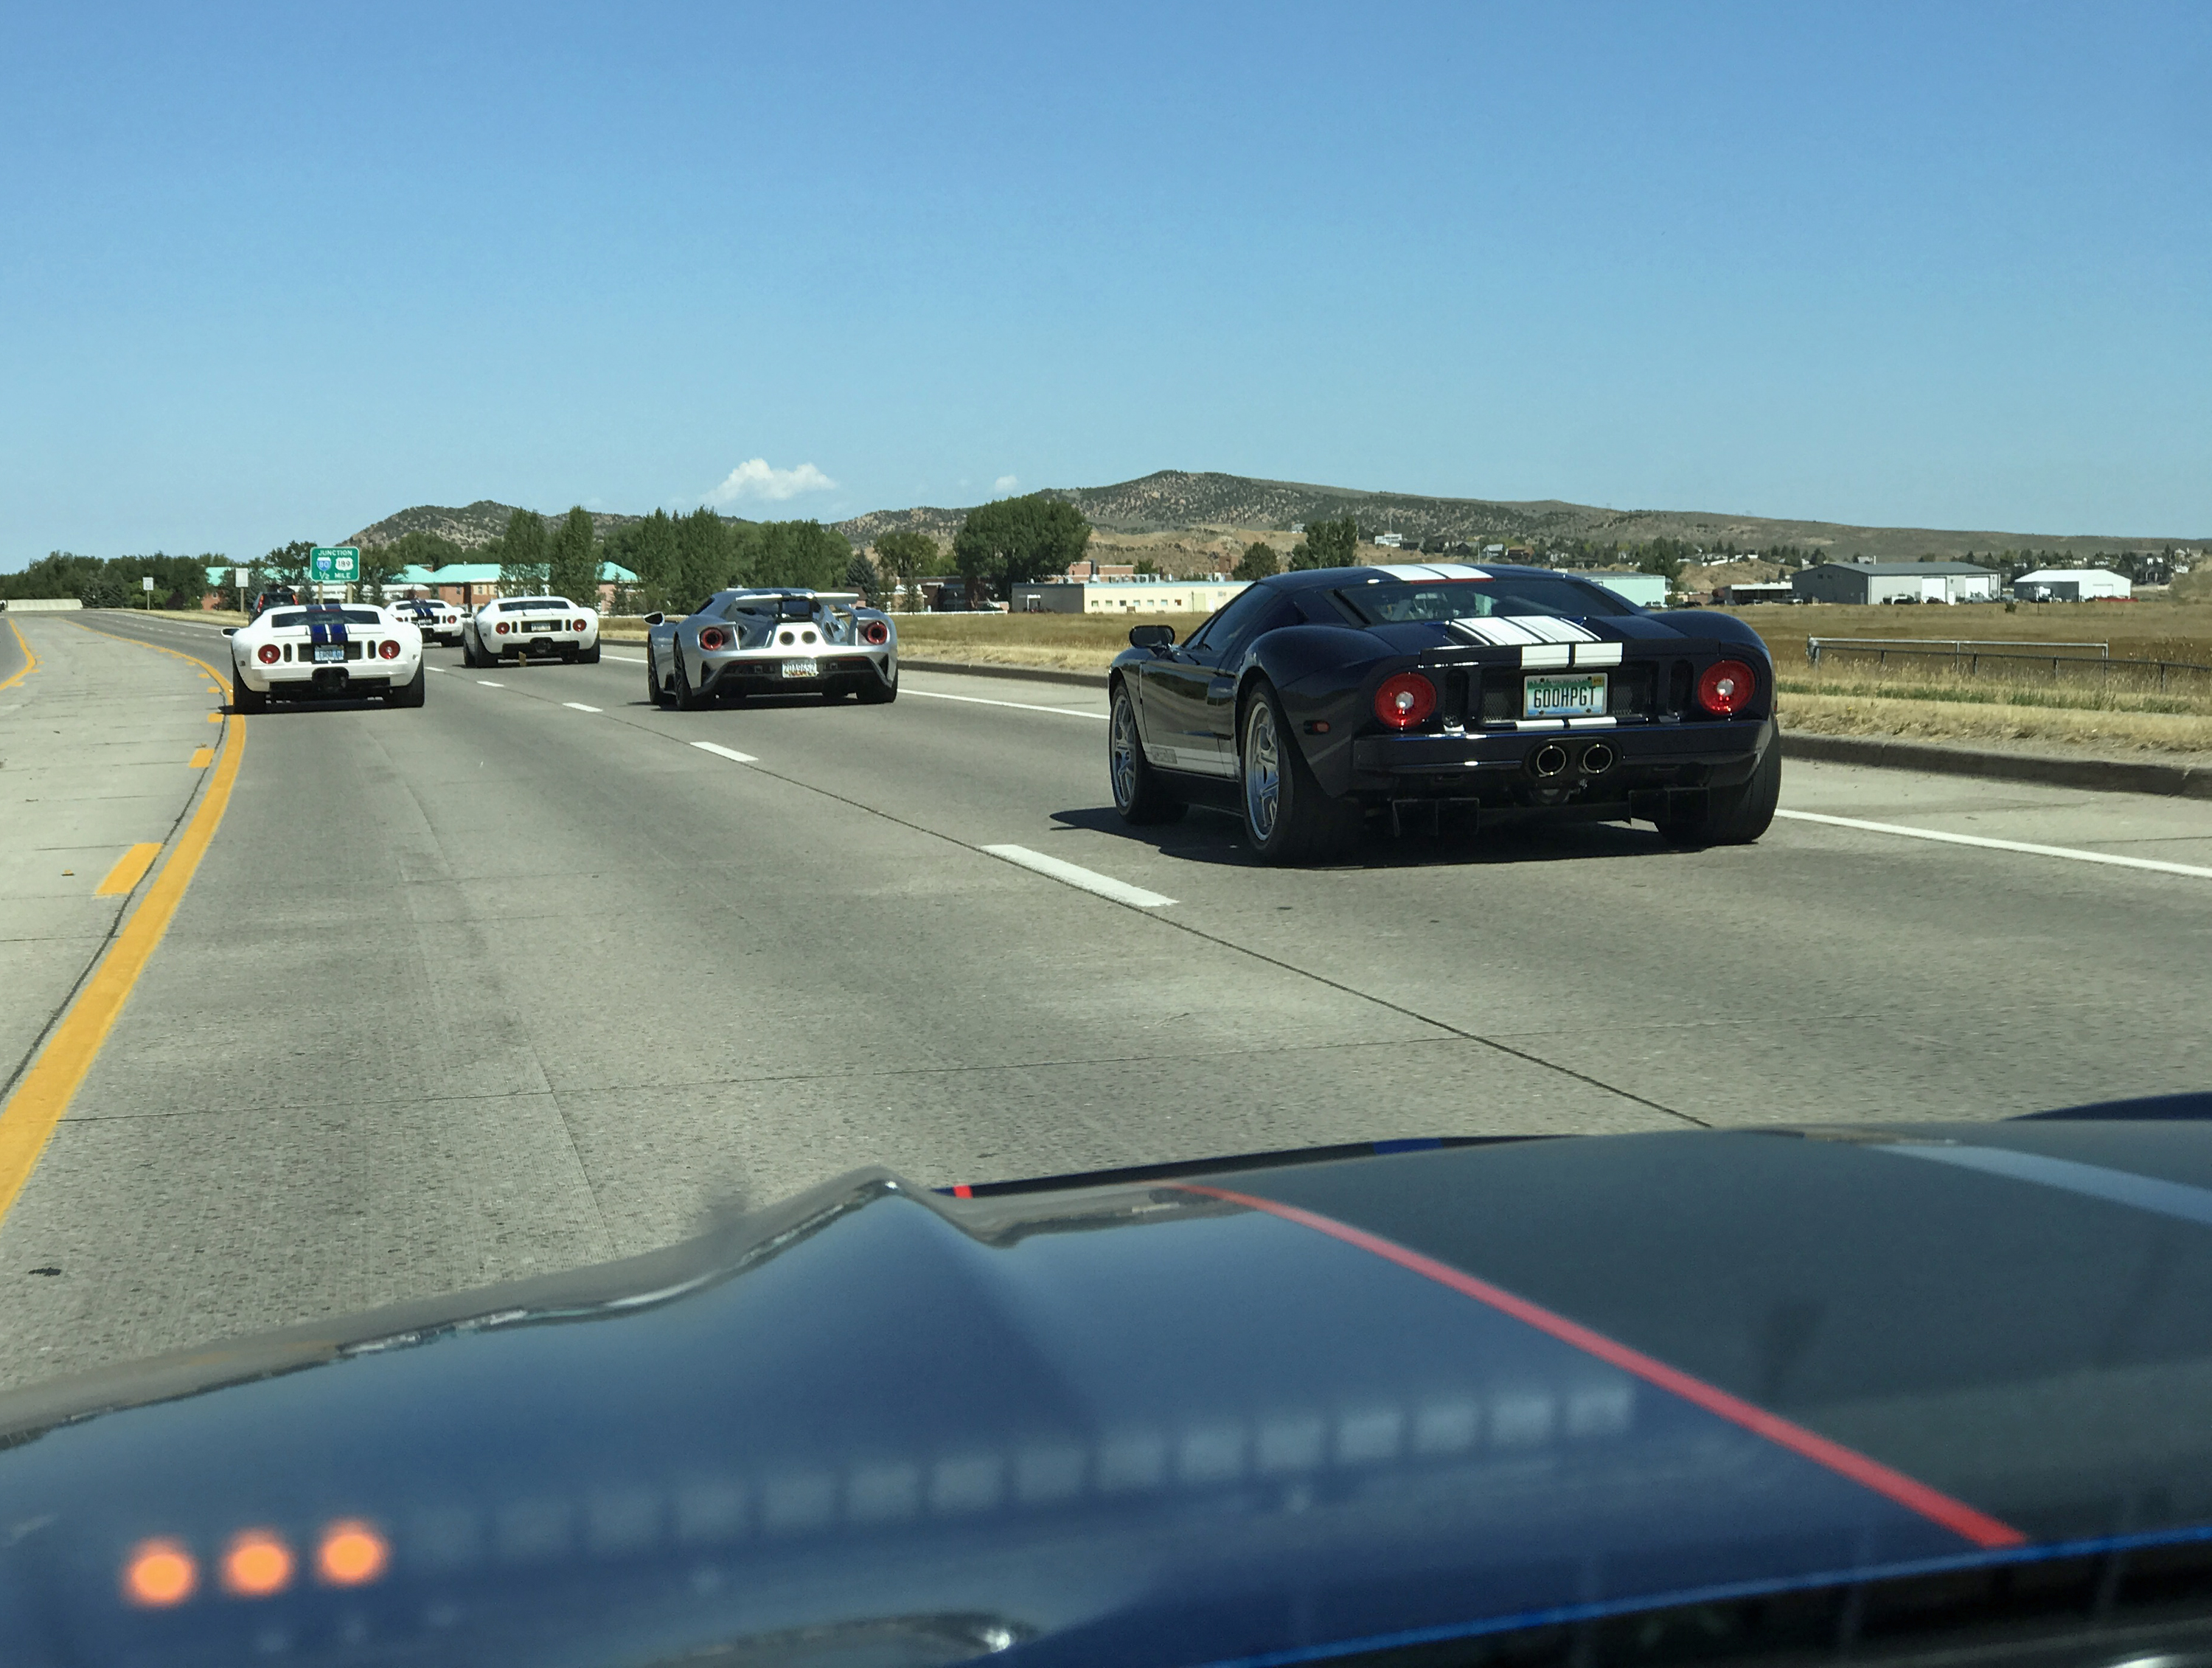 Ford GT Owners Rally Driving